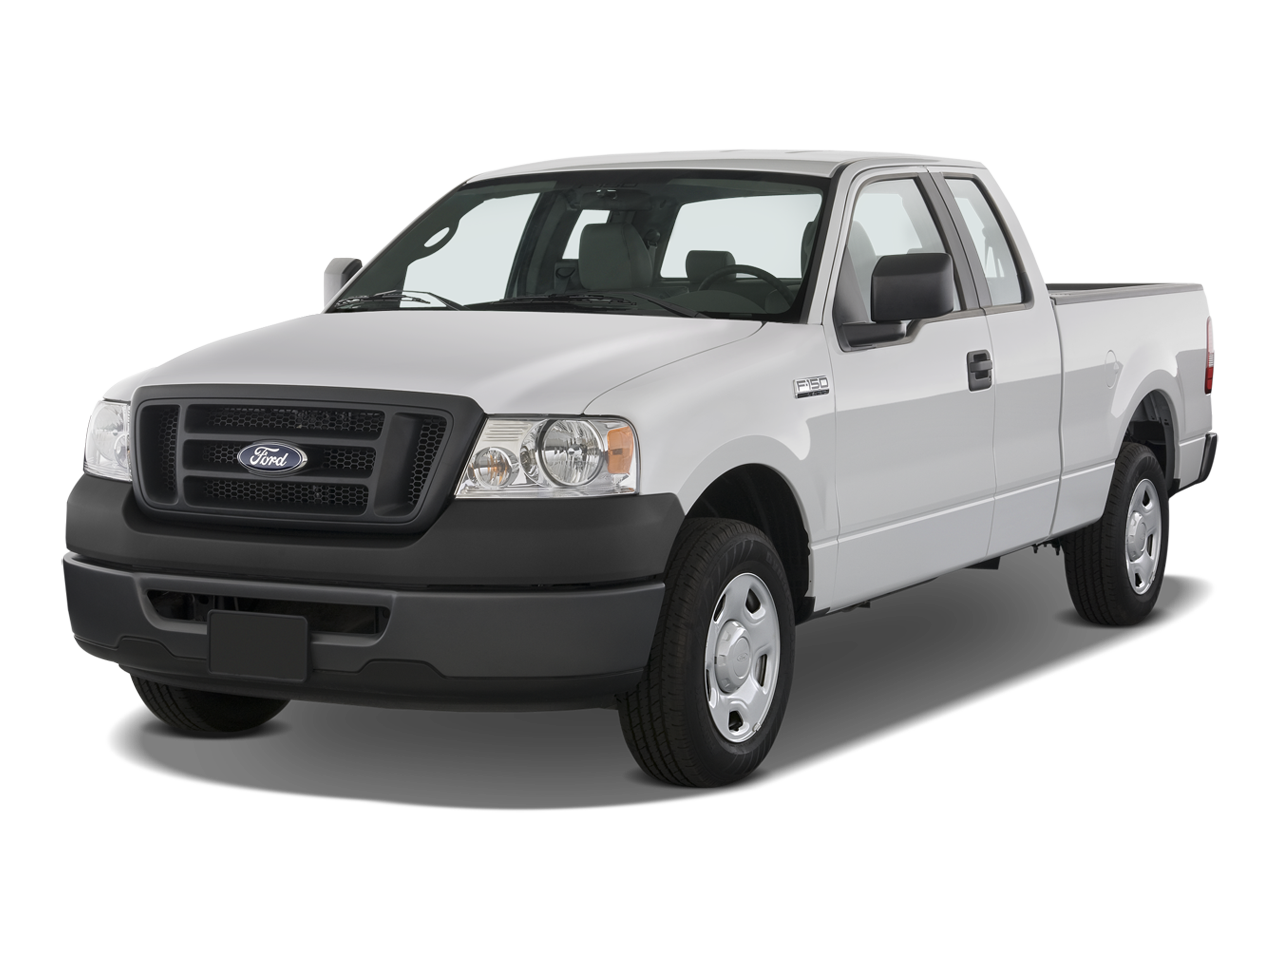 2008 Ford F150 Long Bed Supercab Ford, Ford f150